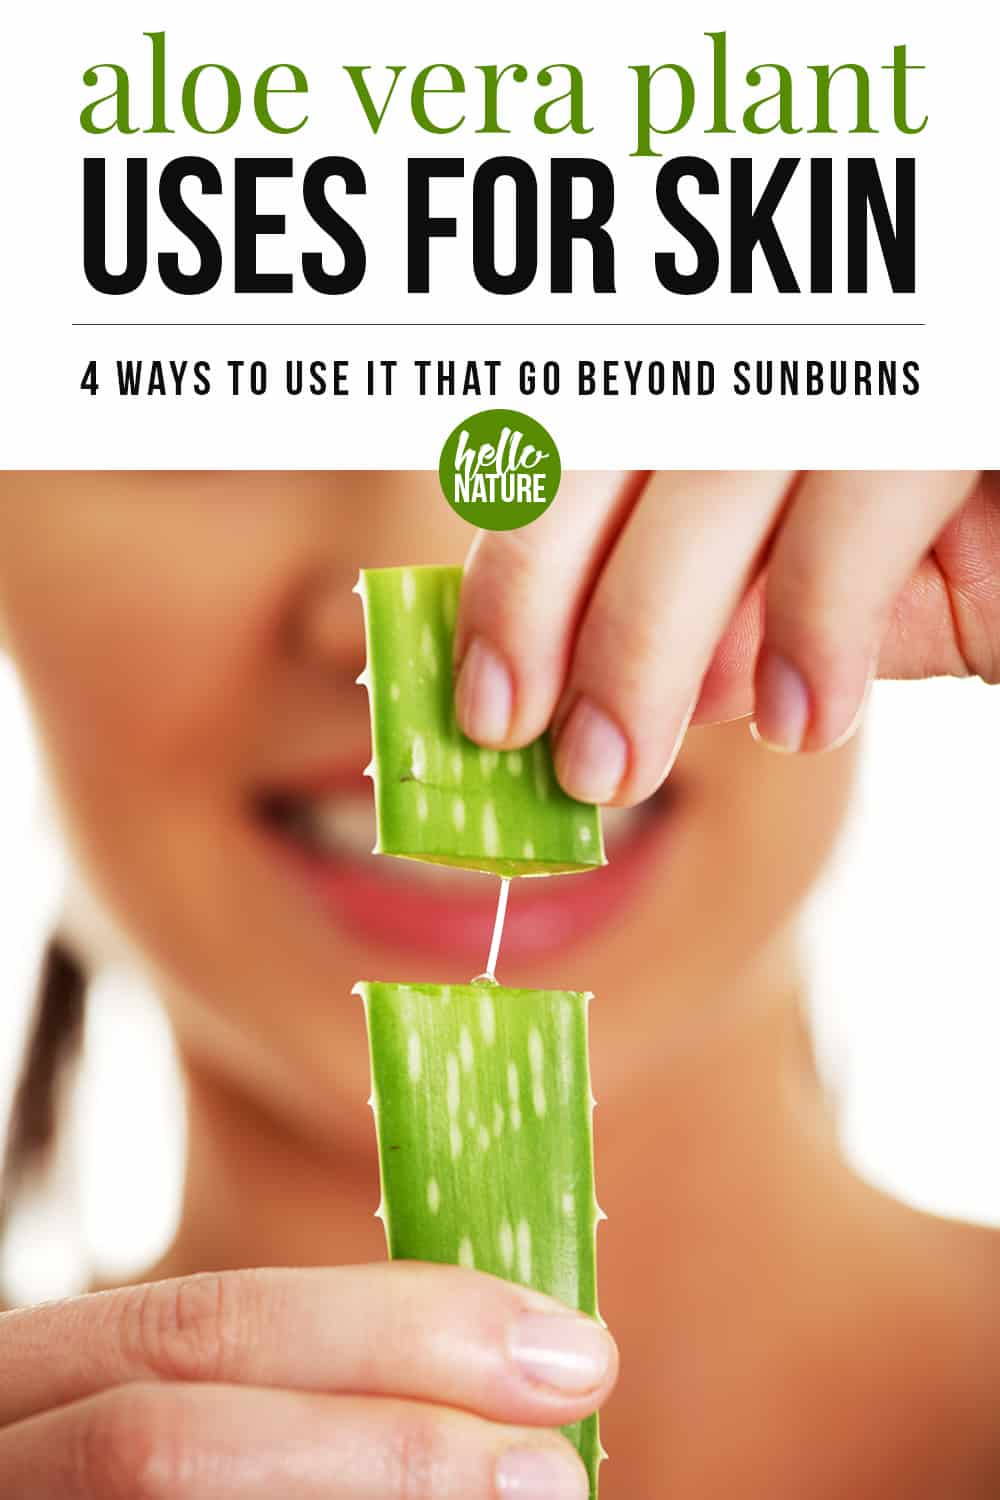 Did you know that there are many aloe vera plant uses for skin that go beyond sunburn relief? Learn how amazing aloe vera for skin care can be with this mini guide on the aloe vera plant uses and benefits.